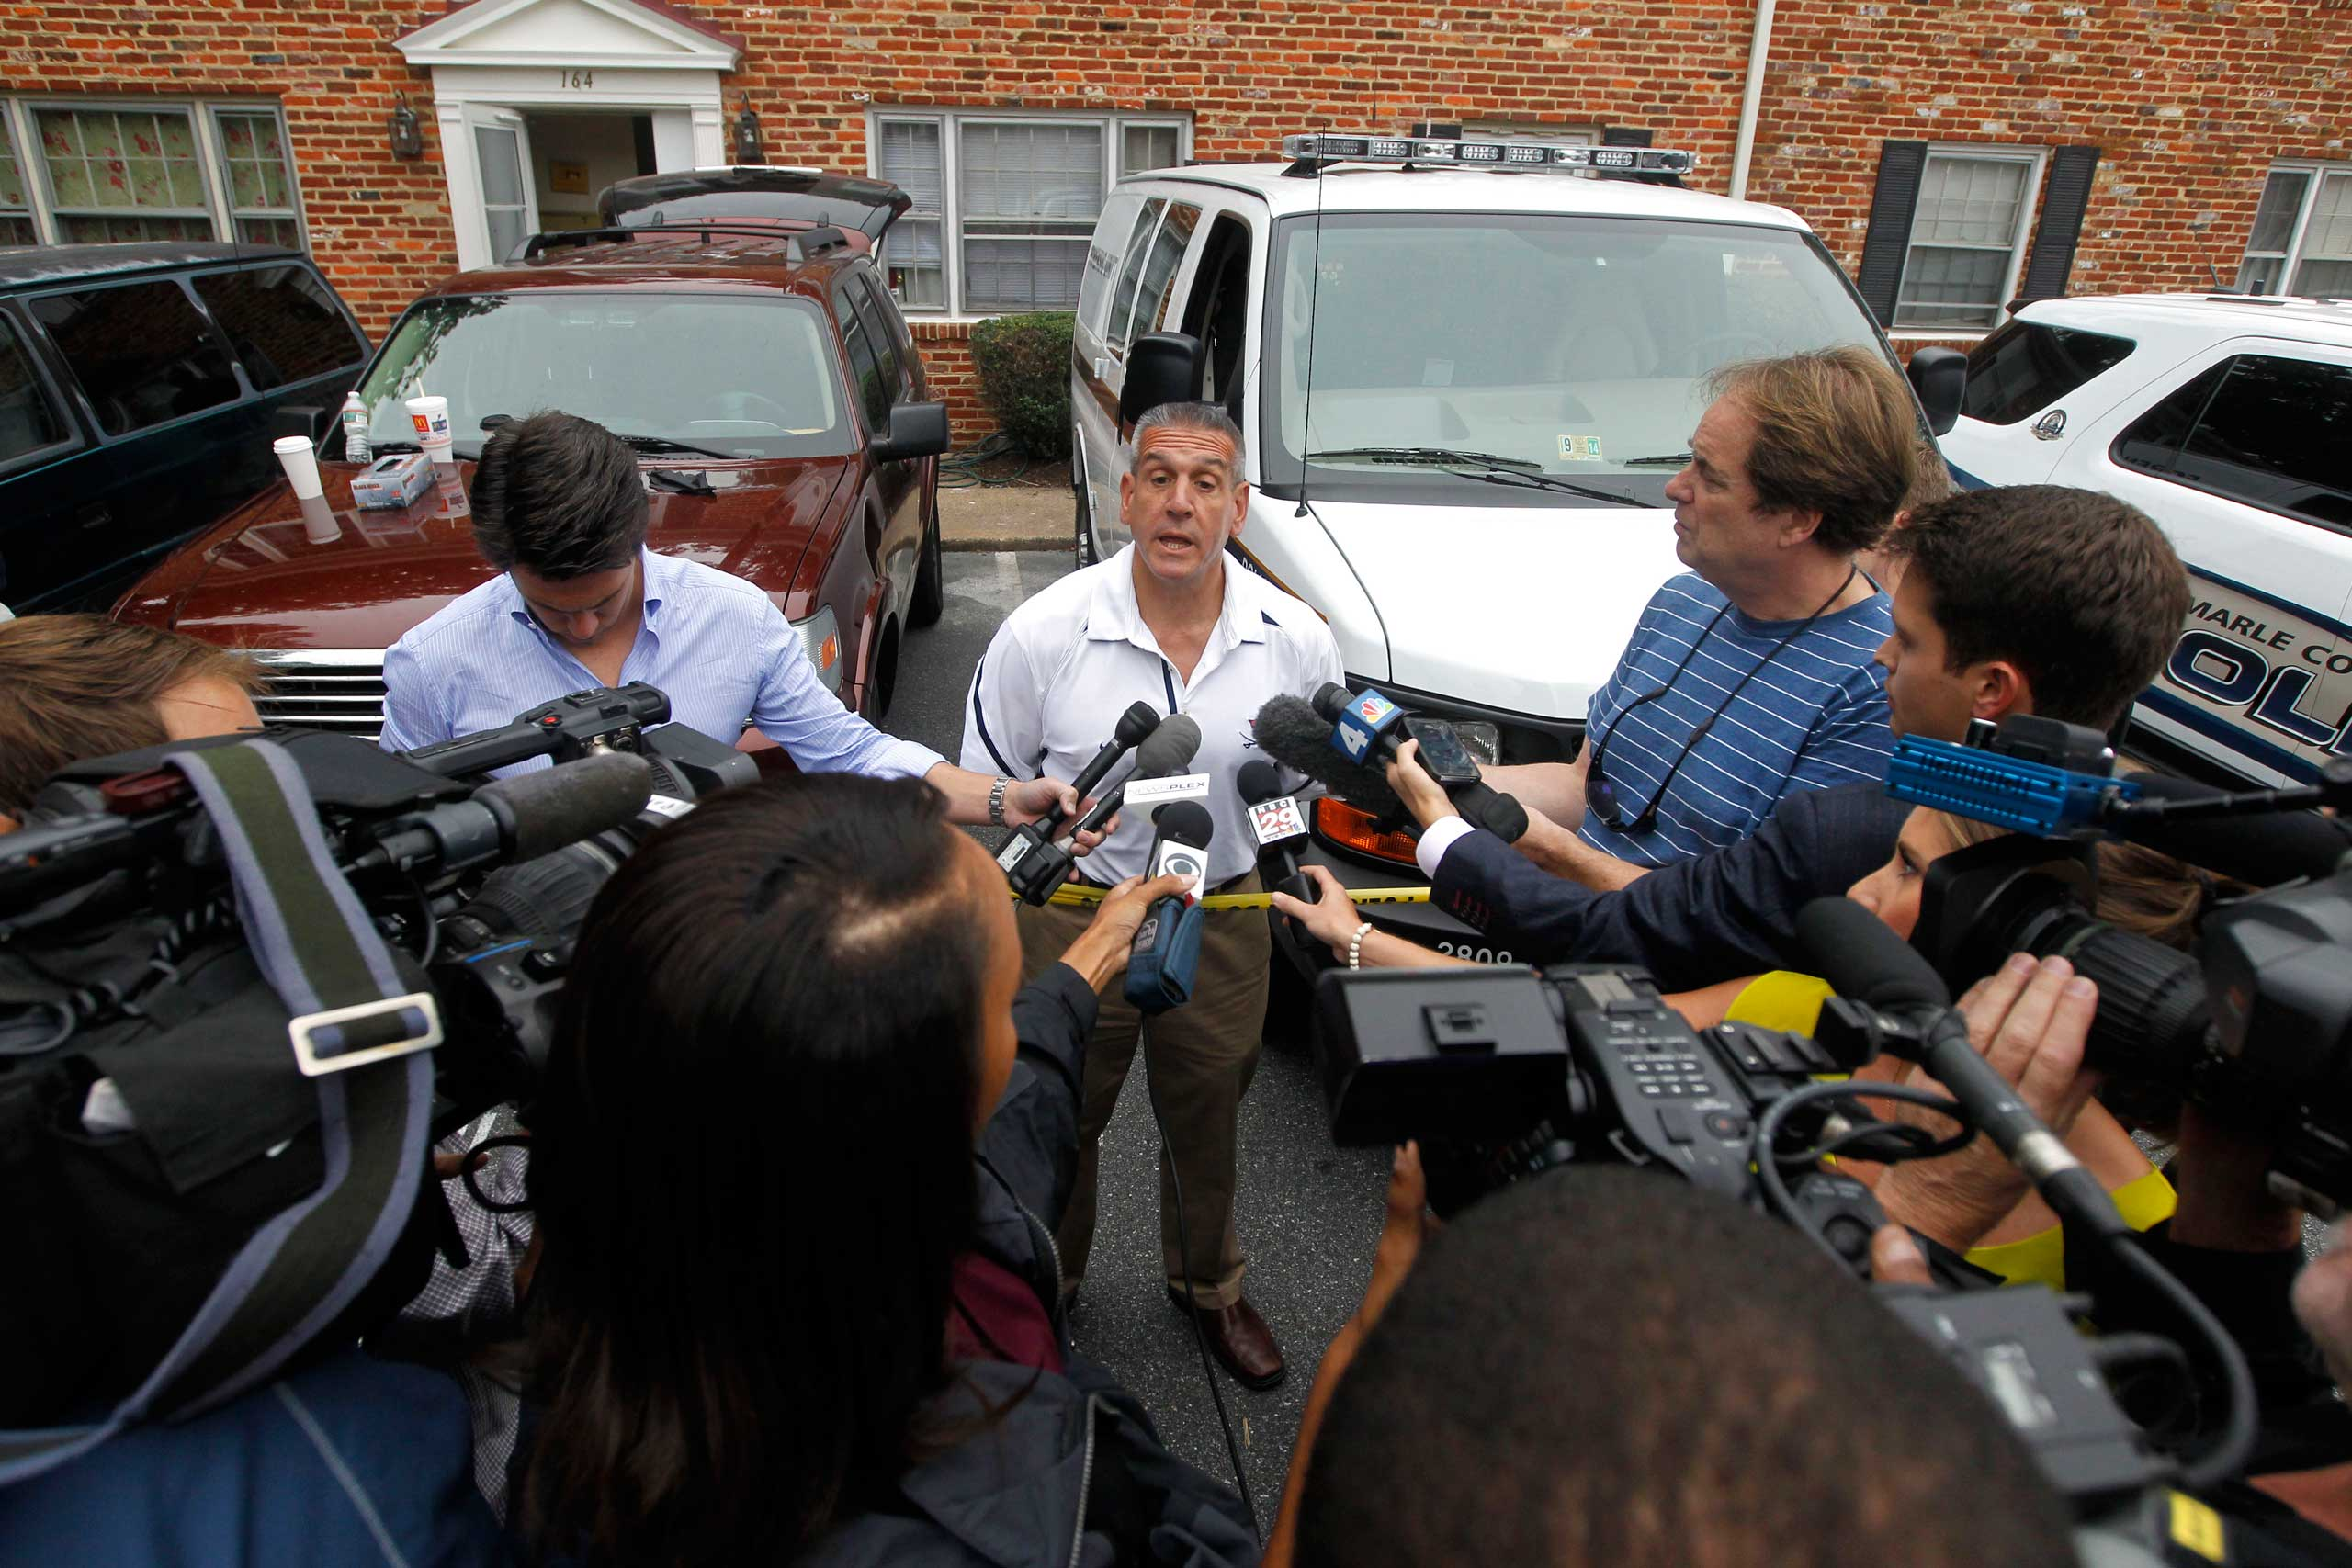 Police Chief Timothy J. Longo speaks with reporters at a Hessian Hills apartment as the search for missing University of Virginia student Hannah Graham continues, Sept. 19, 2014 in Charlottesville, Va.